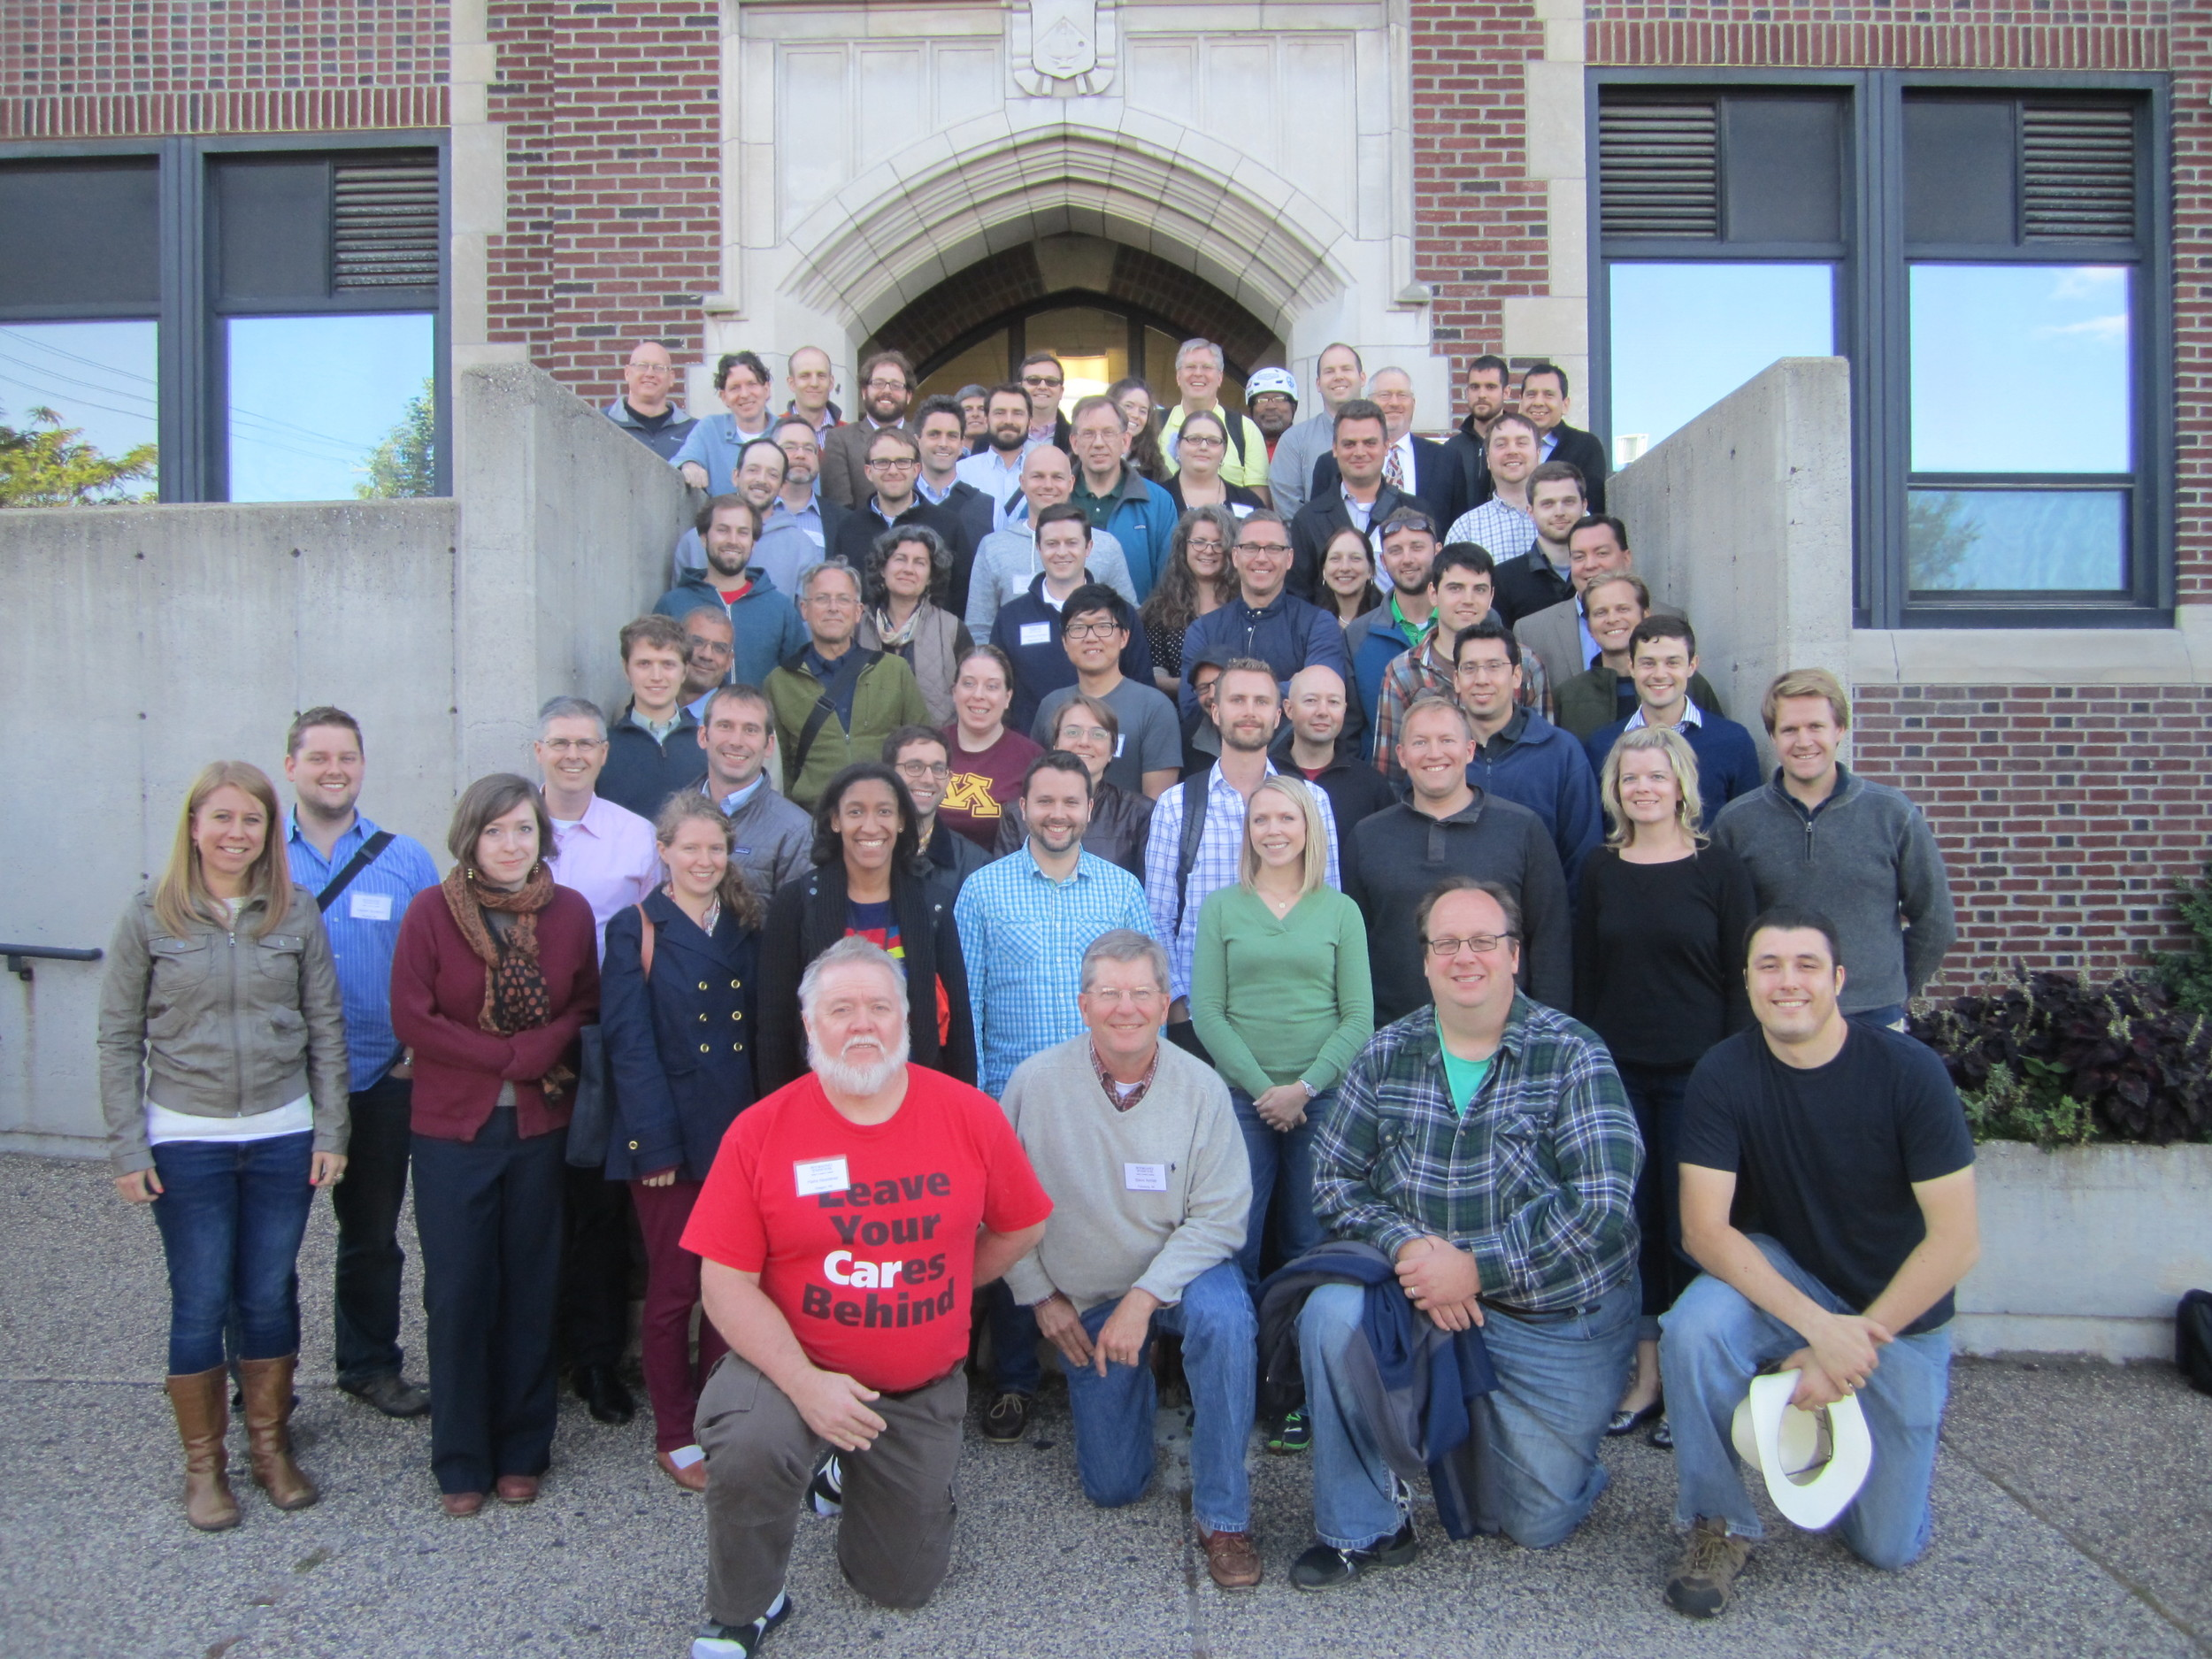 I LOVE OUR MEMBERS! This photo was taken at the National Gathering in Minneapolis this past September.